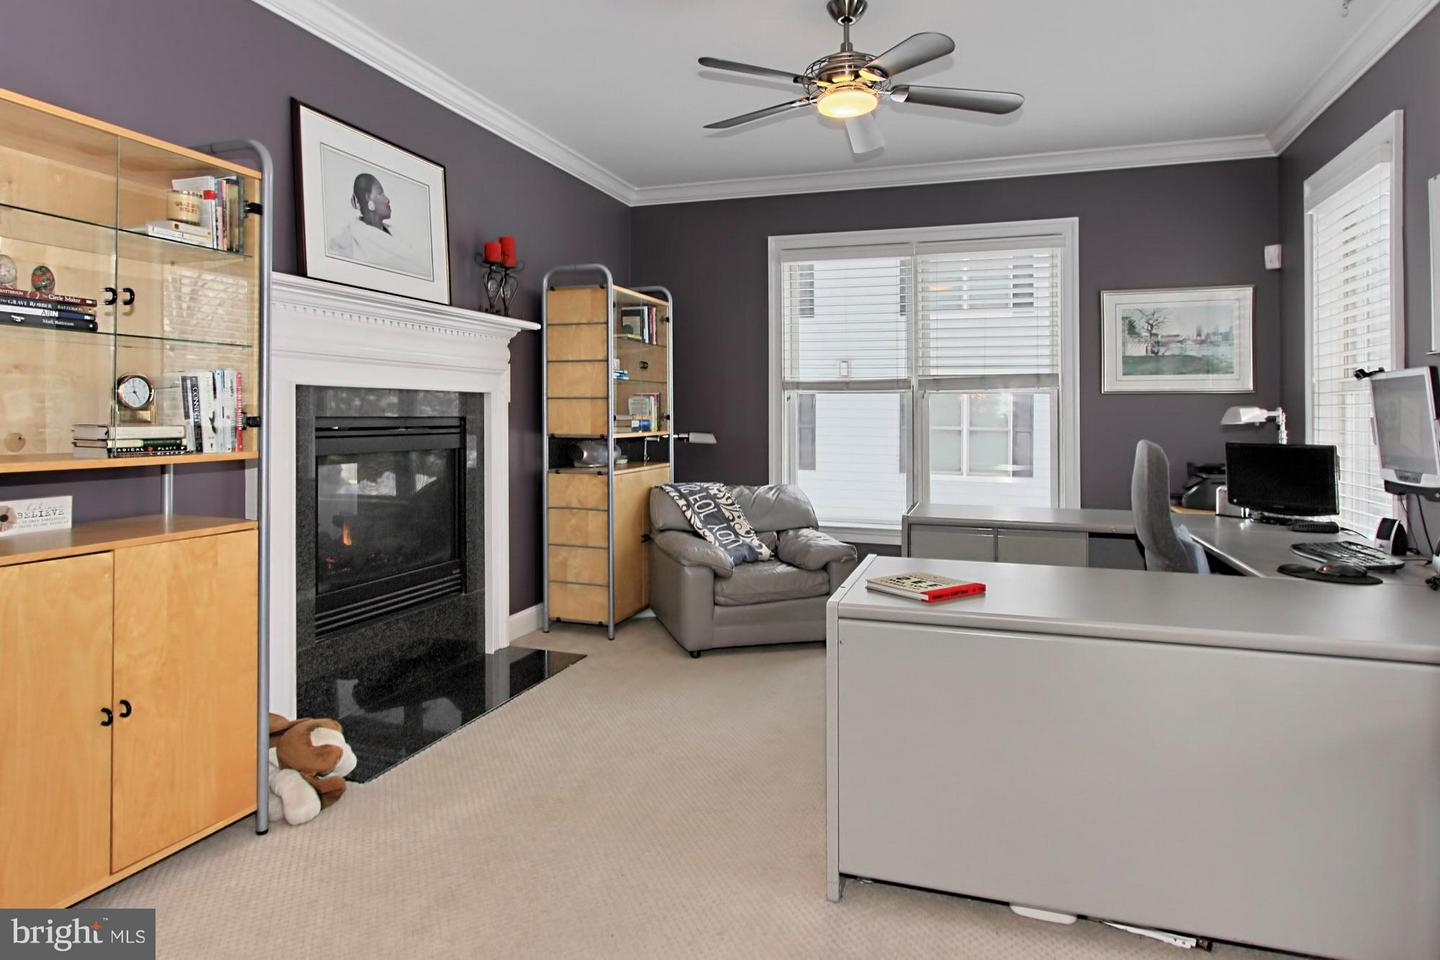 Additional photo for property listing at 107 Hillier St 107 Hillier St Falls Church, Virginia 22046 United States